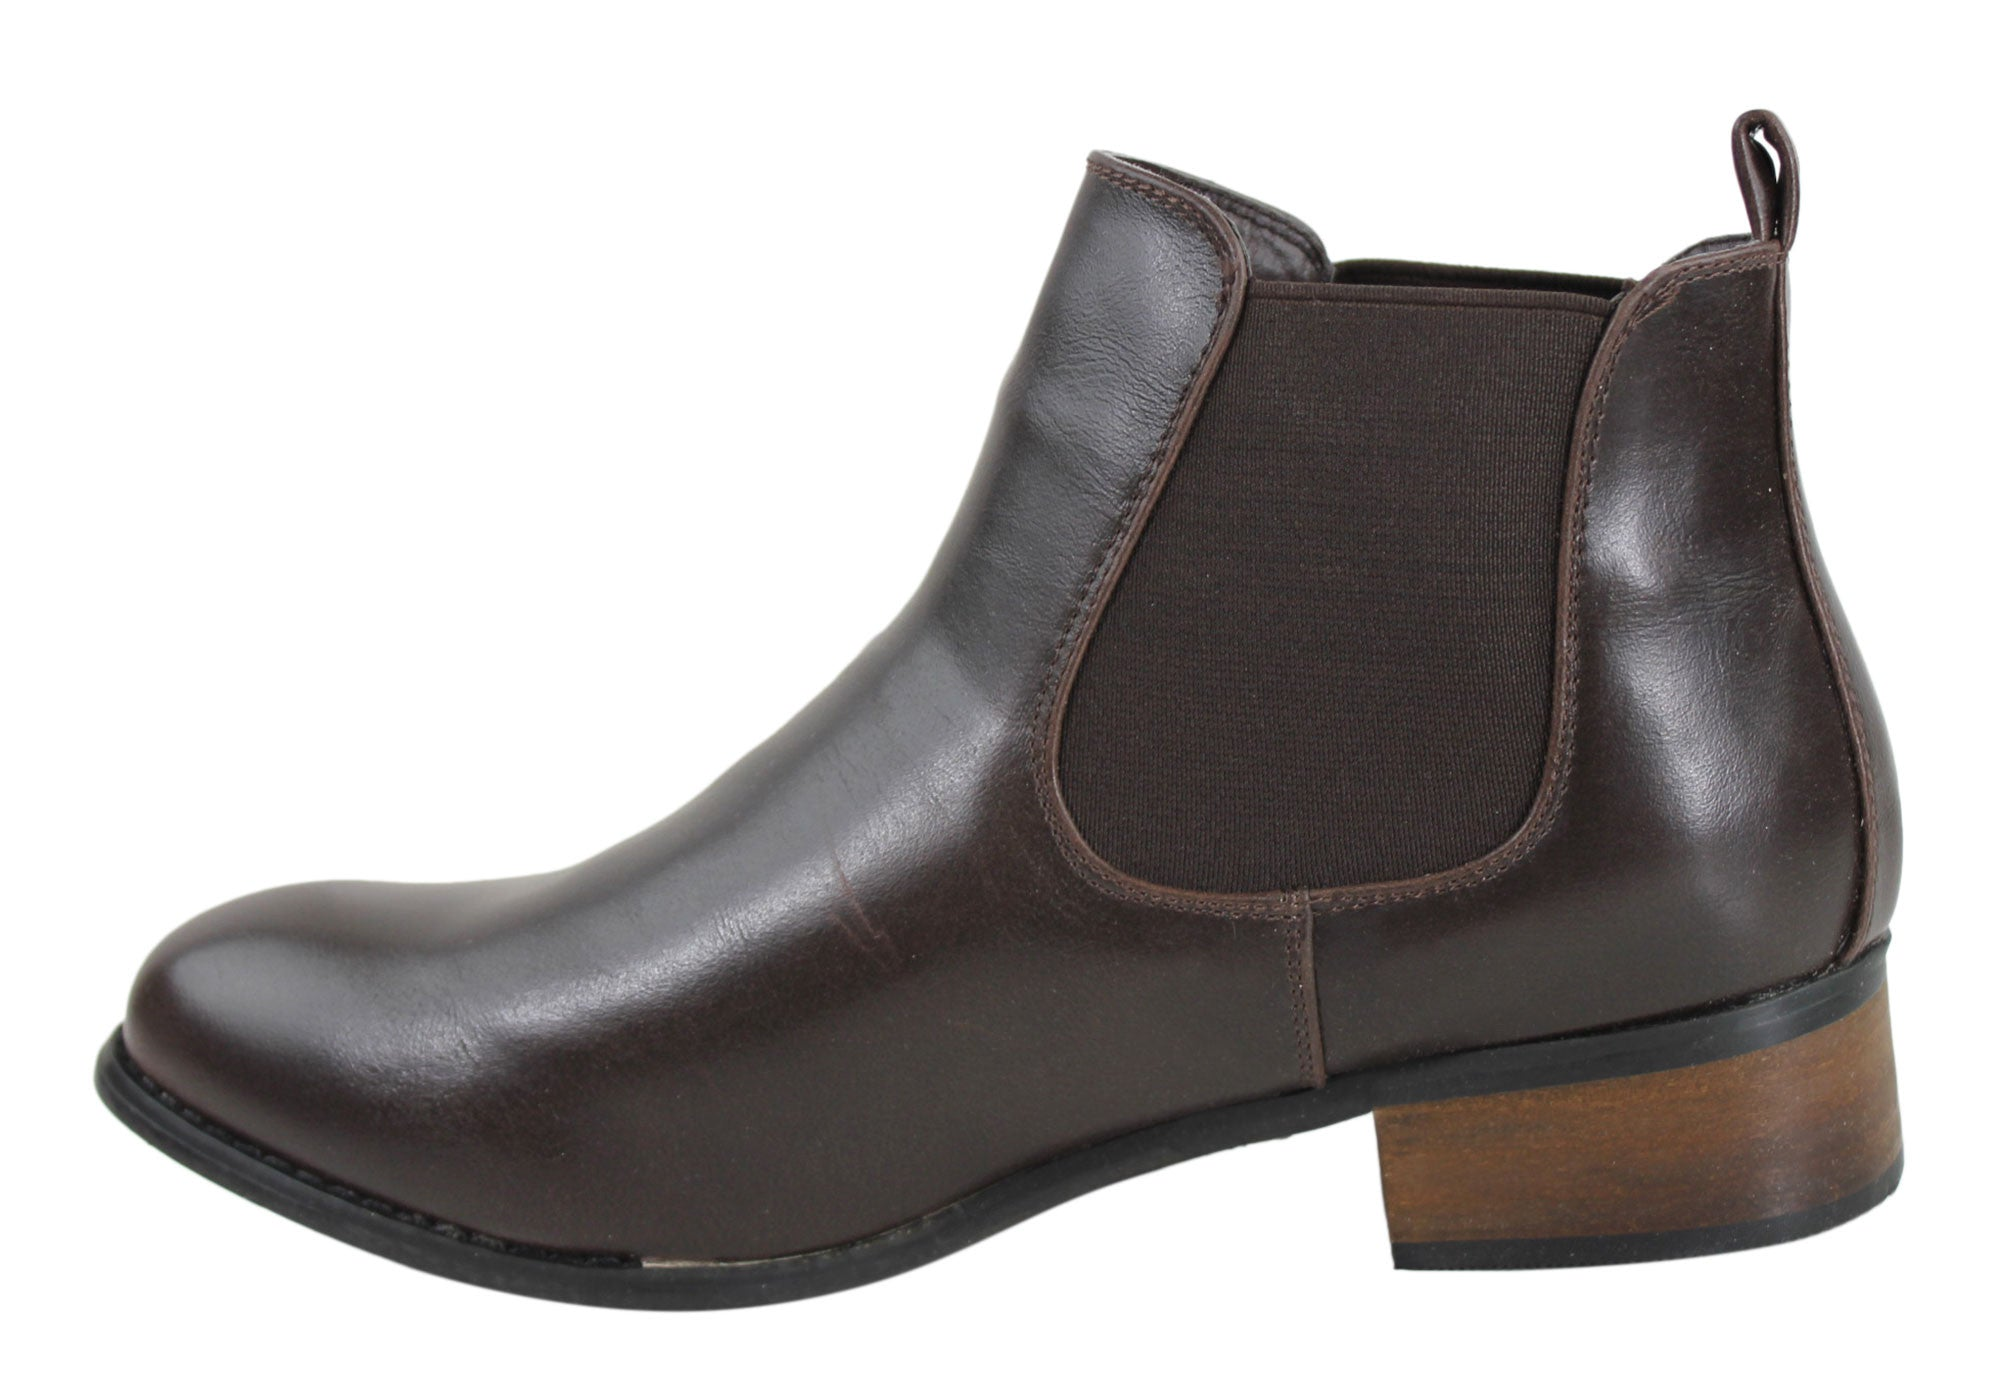 Lavish Vivian Womens Fashion Chelsea Boots